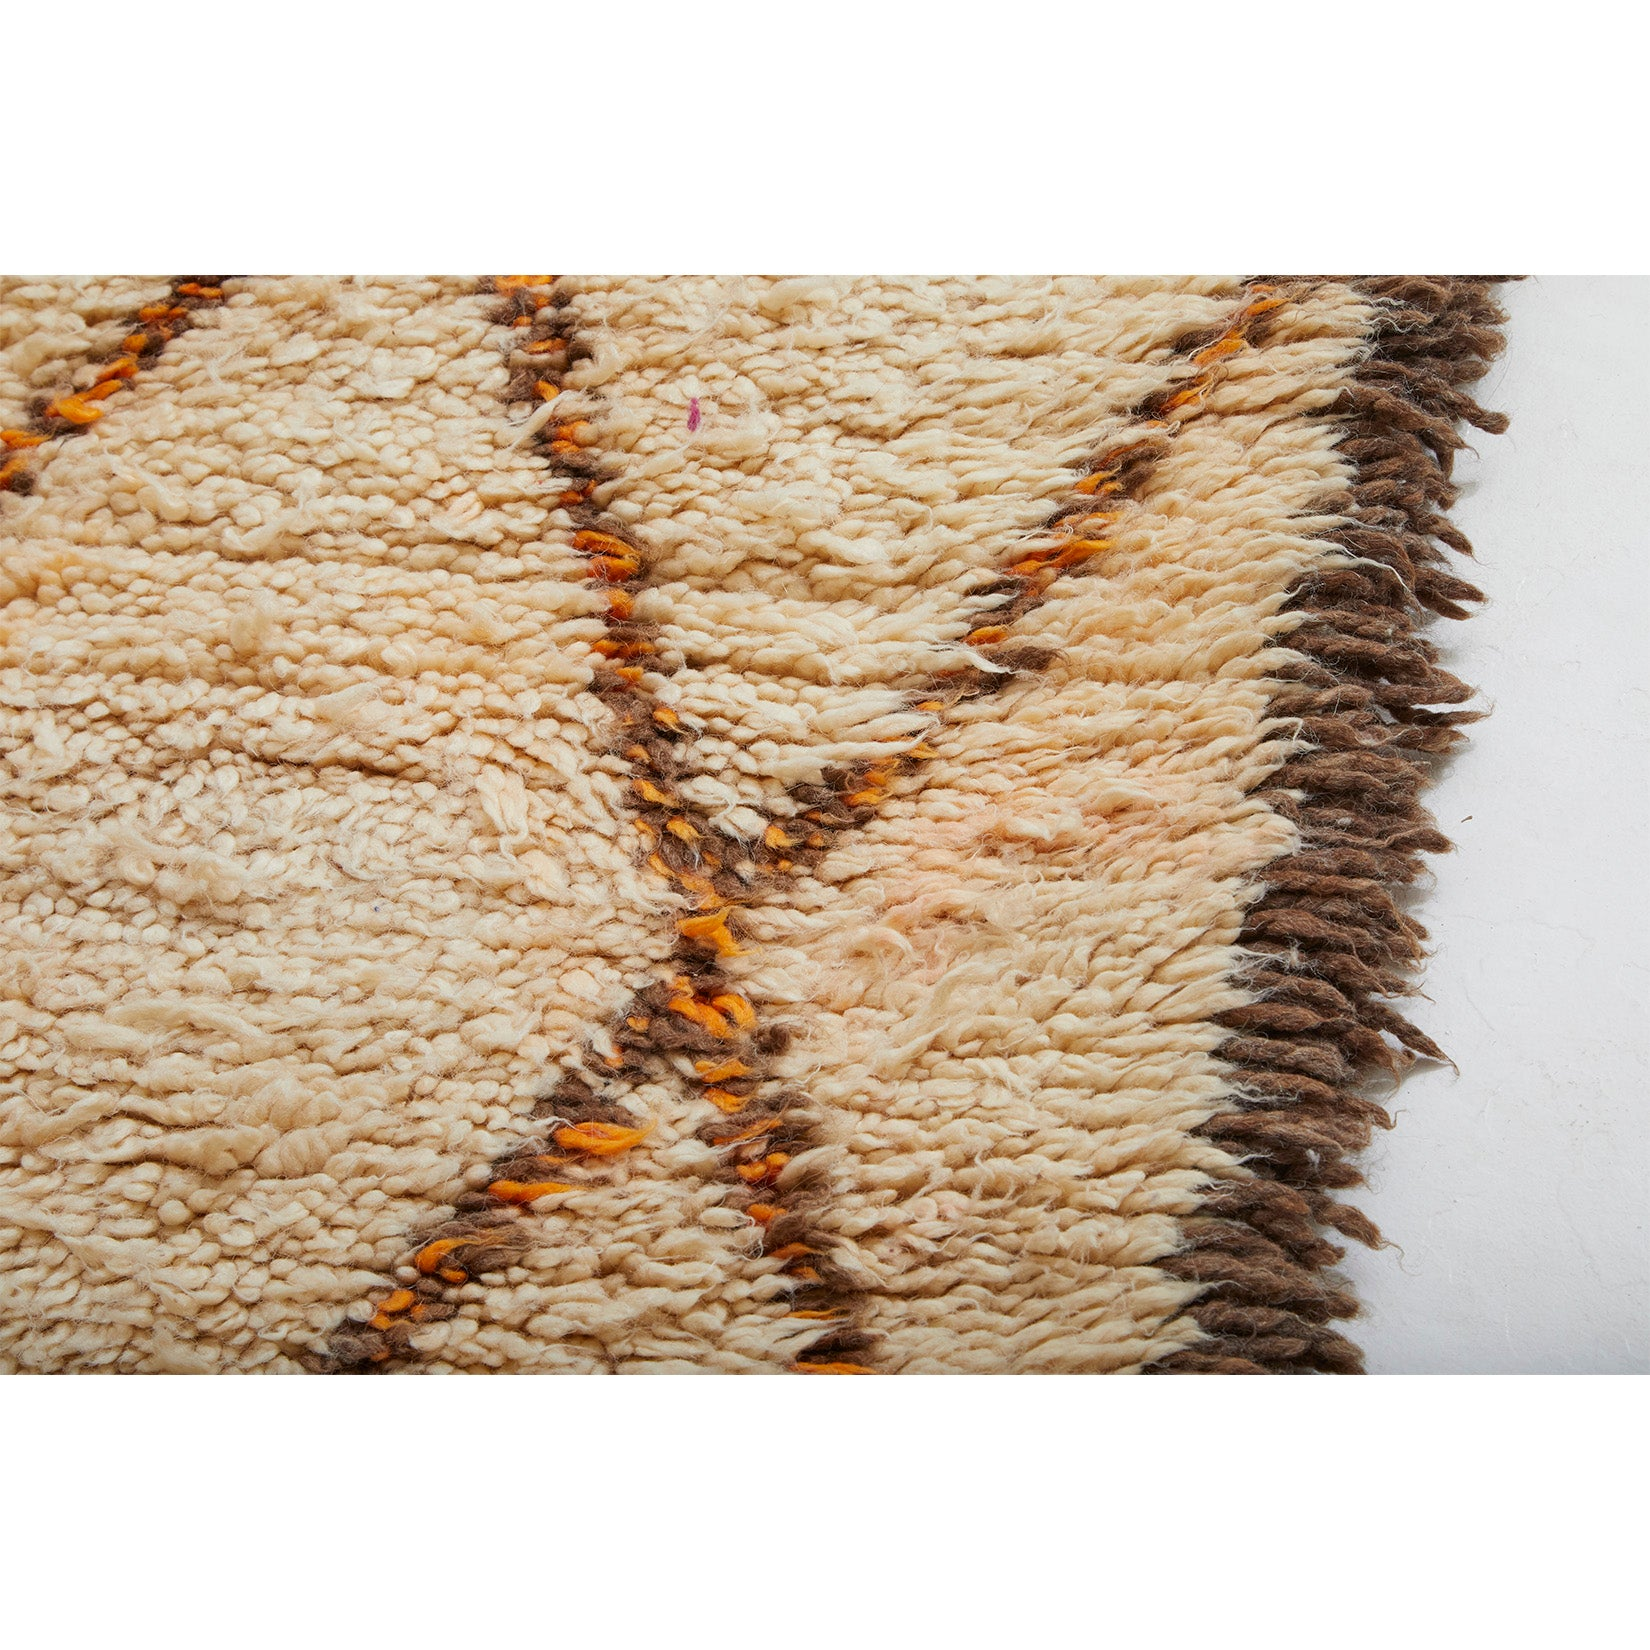 Detail of large ivory-colored Moroccan berber rug in beni ourain style - Kantara | Moroccan Rugs